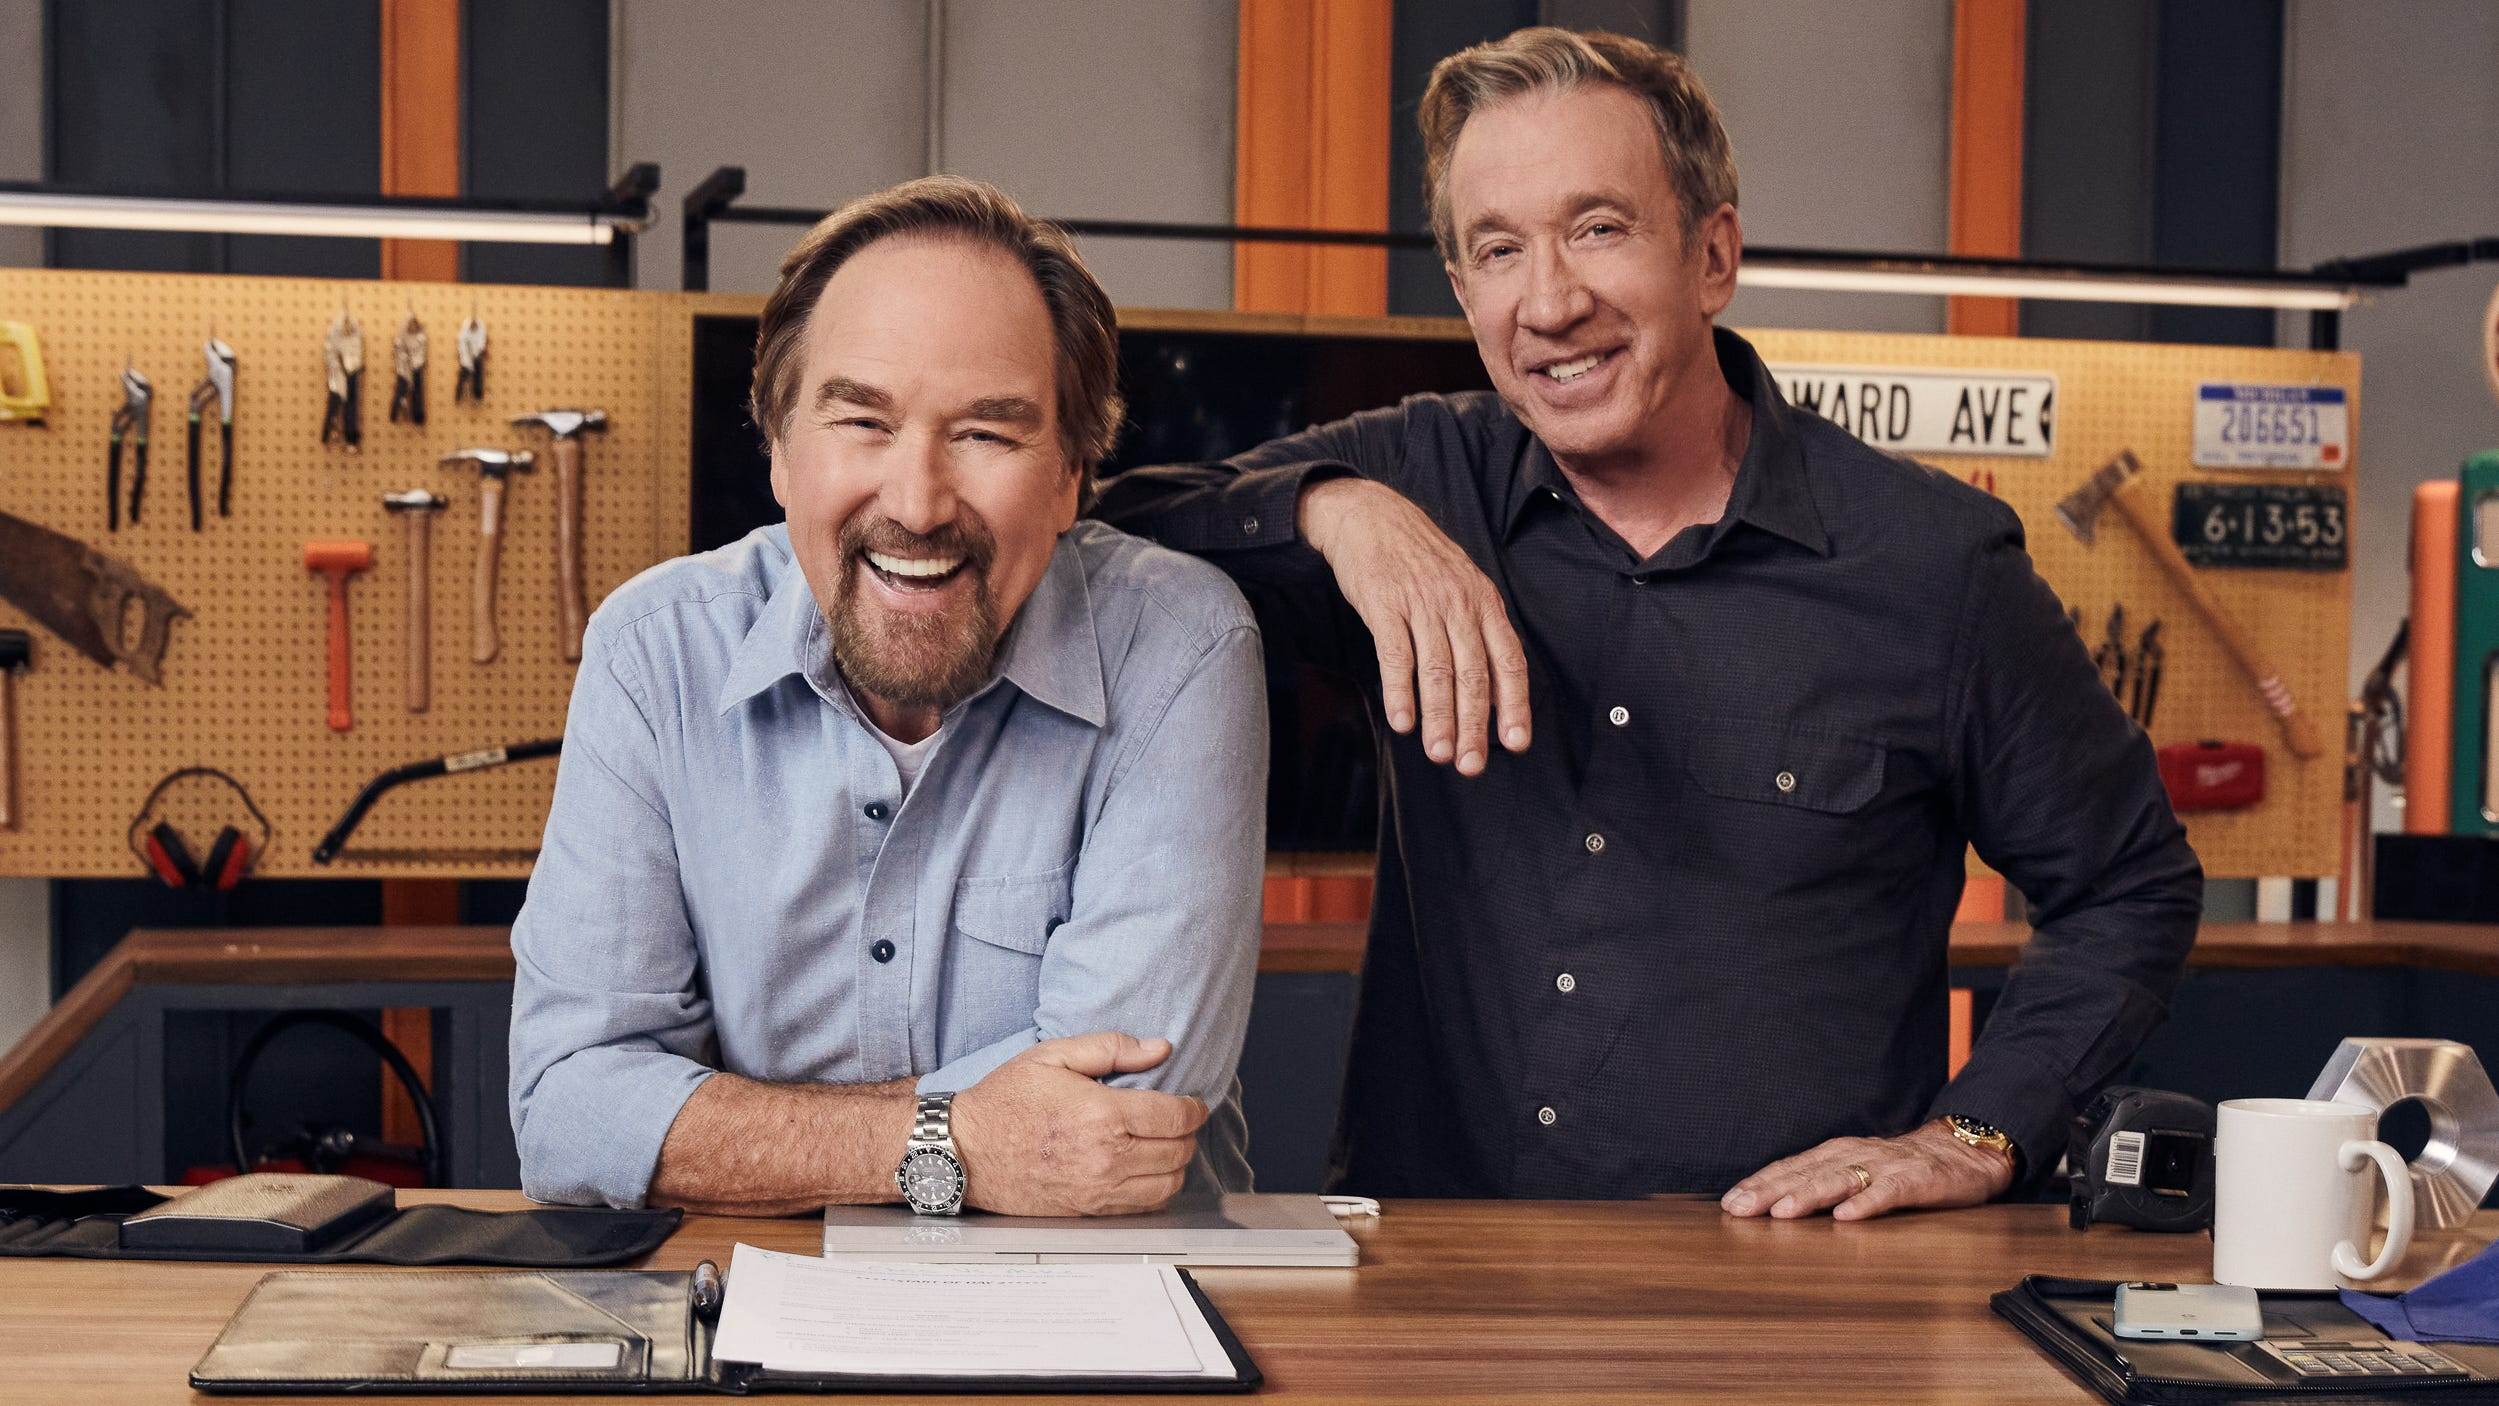 'Exactly like we were in 'Tool Time': 'Home Improvement' stars Tim Allen, Richard Karn launch History Channel DIY contest - USA TODAY